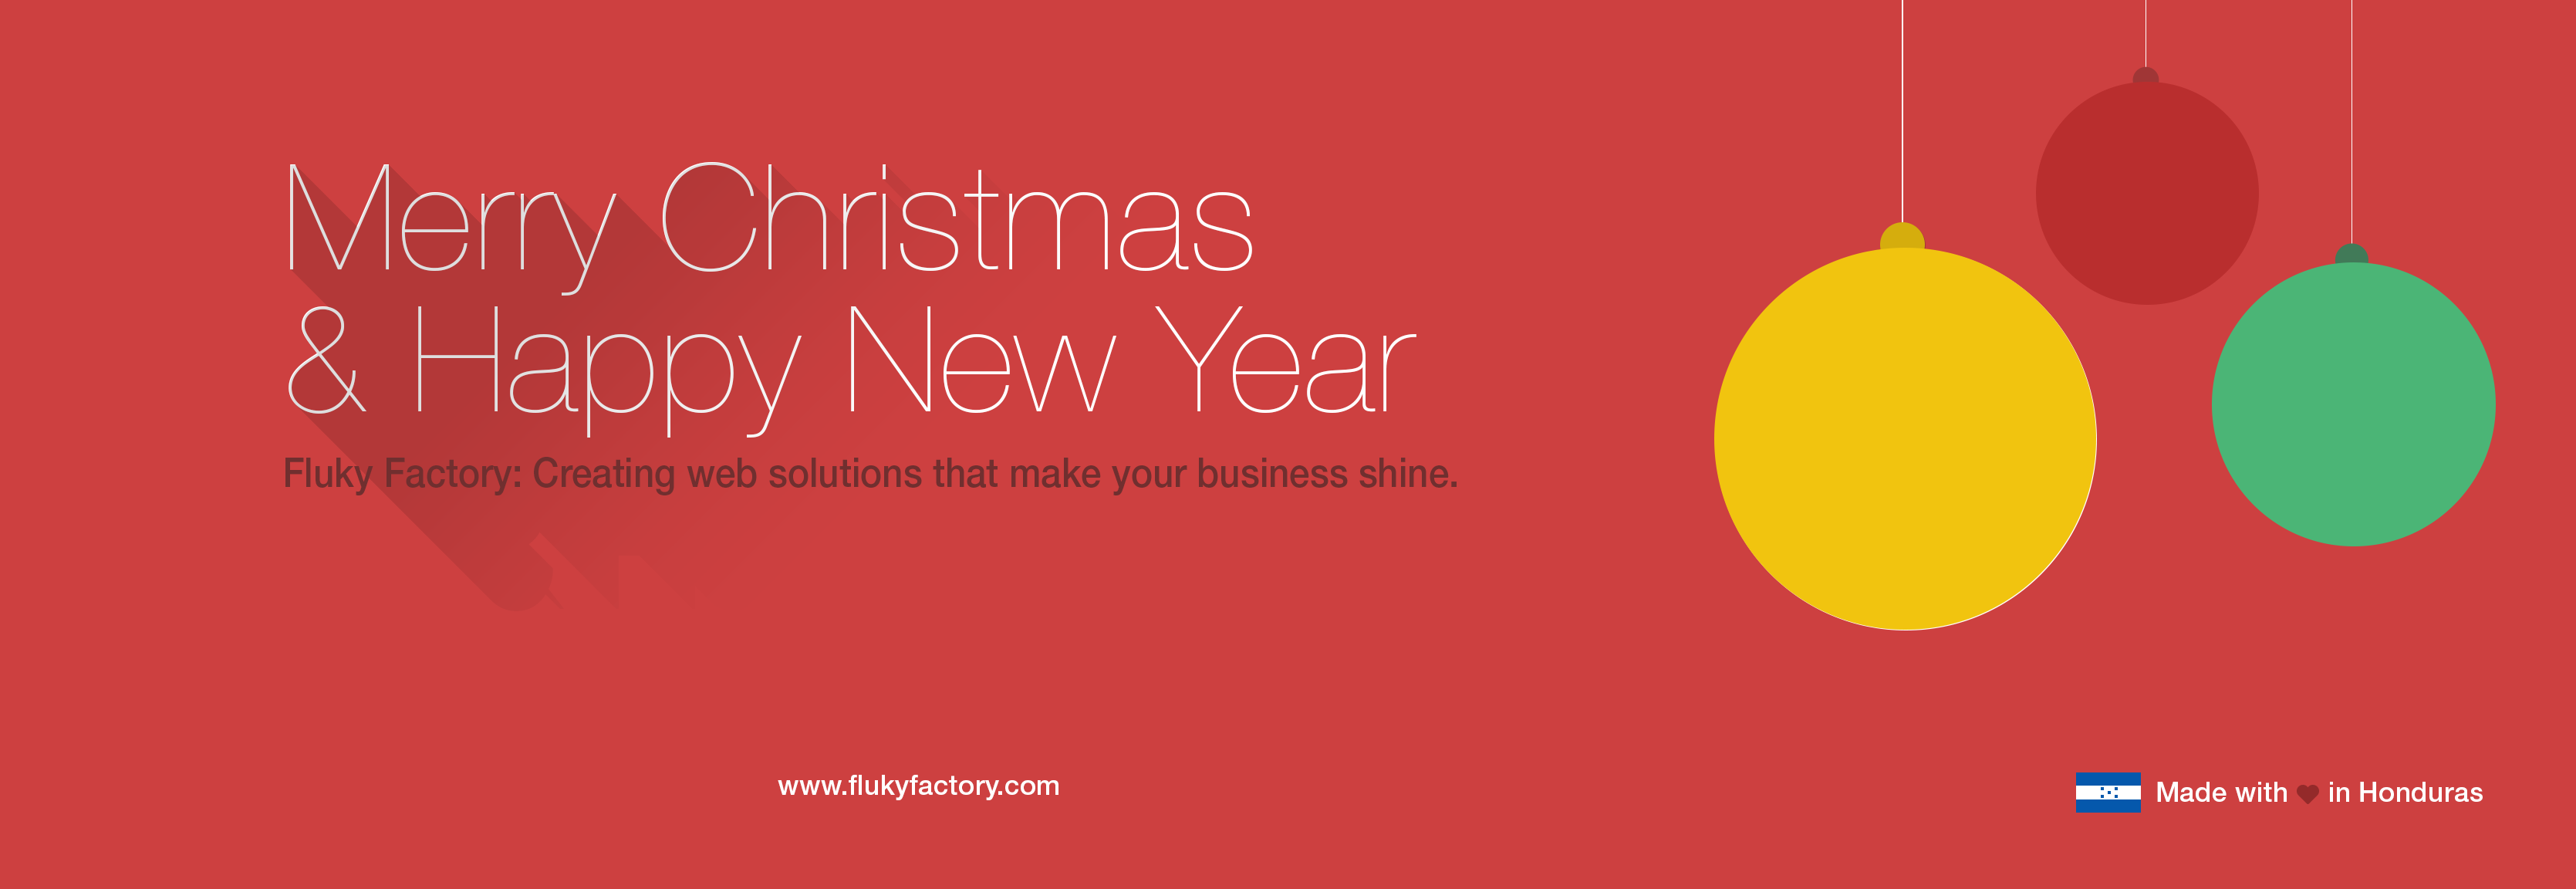 Merry Christmas and Happy New Year from FLUKY FACTORY